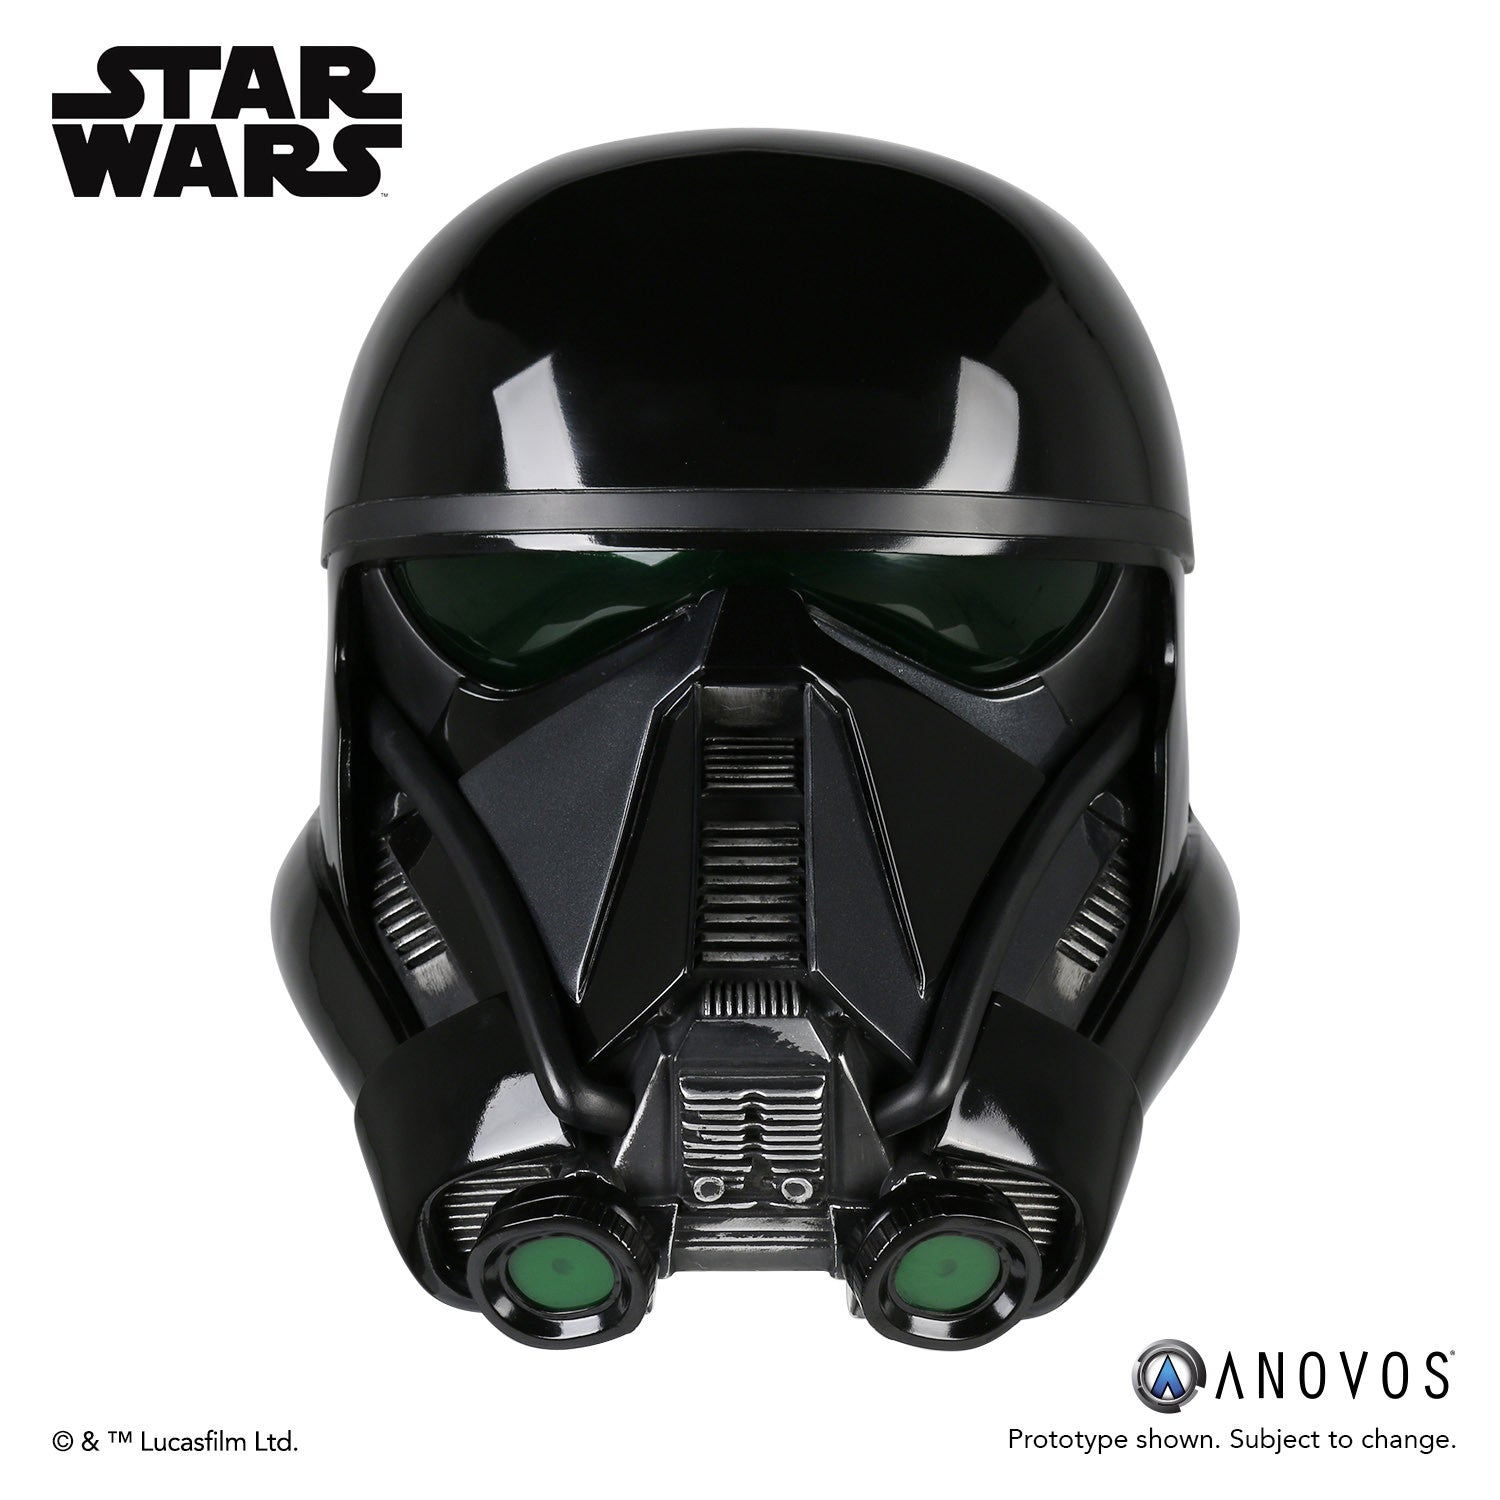 Rogue one a star wars story death trooper helmet accessory 2018 rogue one a star wars story death trooper helmet accessory 2018 pre solutioingenieria Image collections